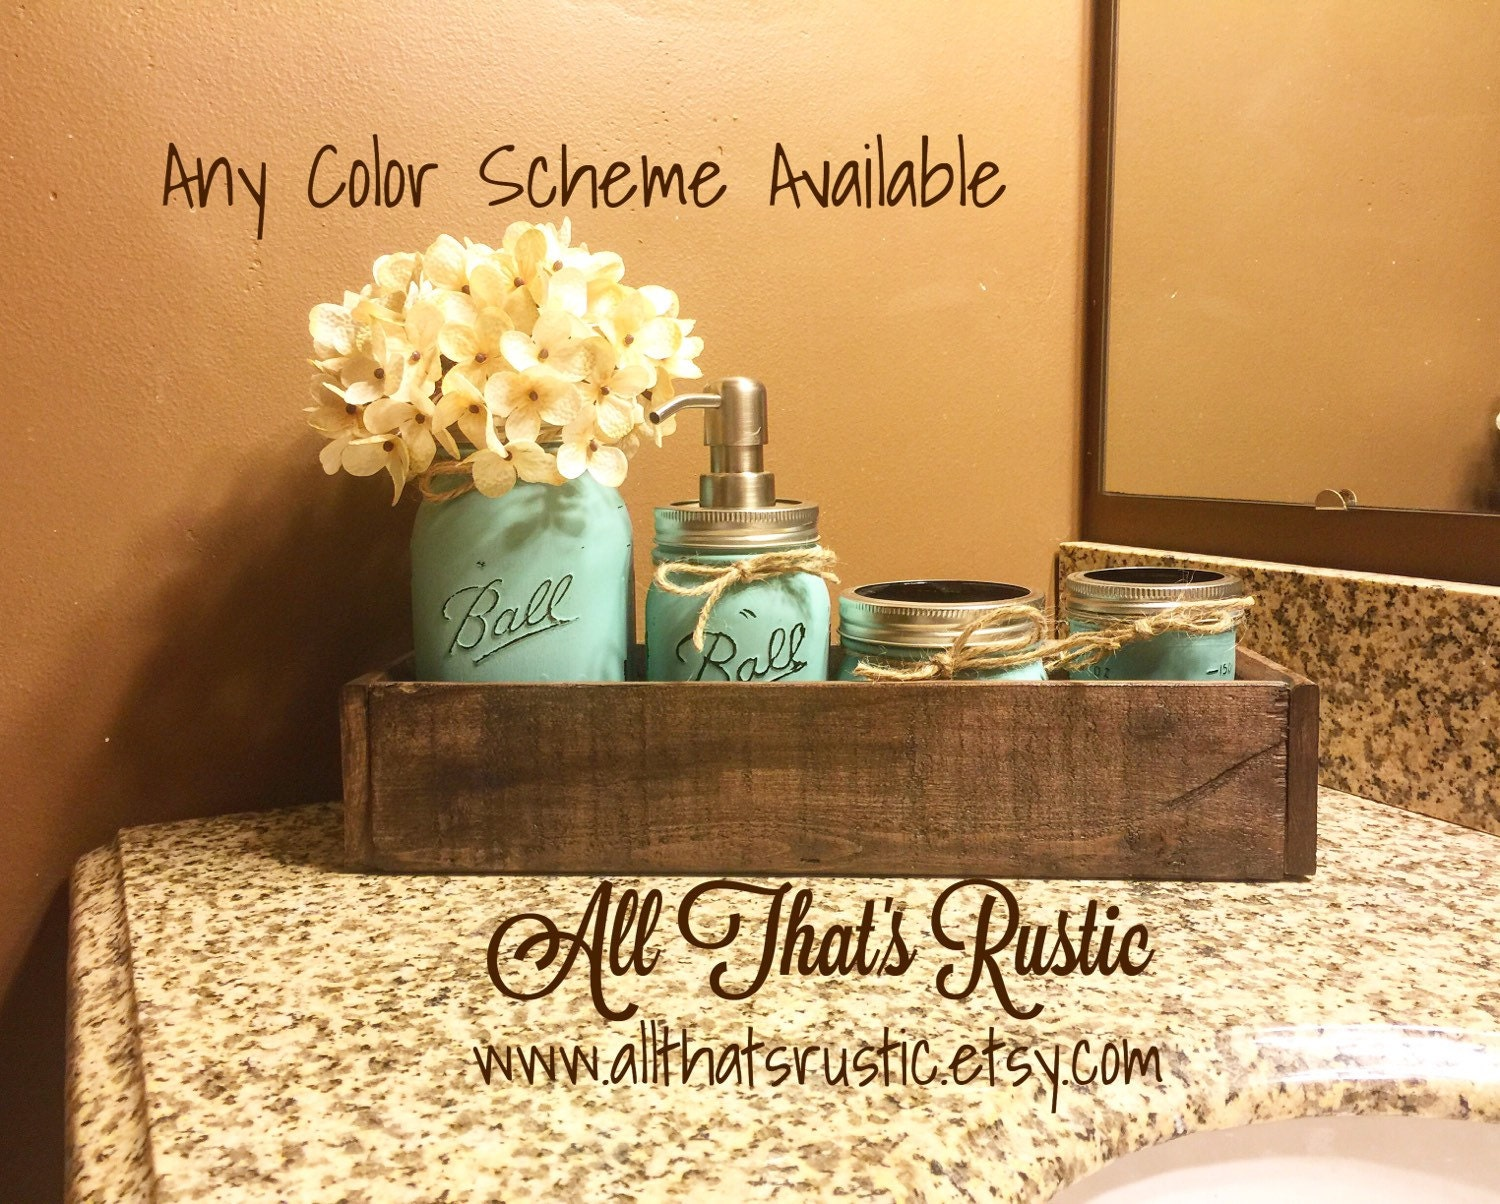 Rustic planter box mason jar bathroom set bathroom set mason for Bathroom decor etsy